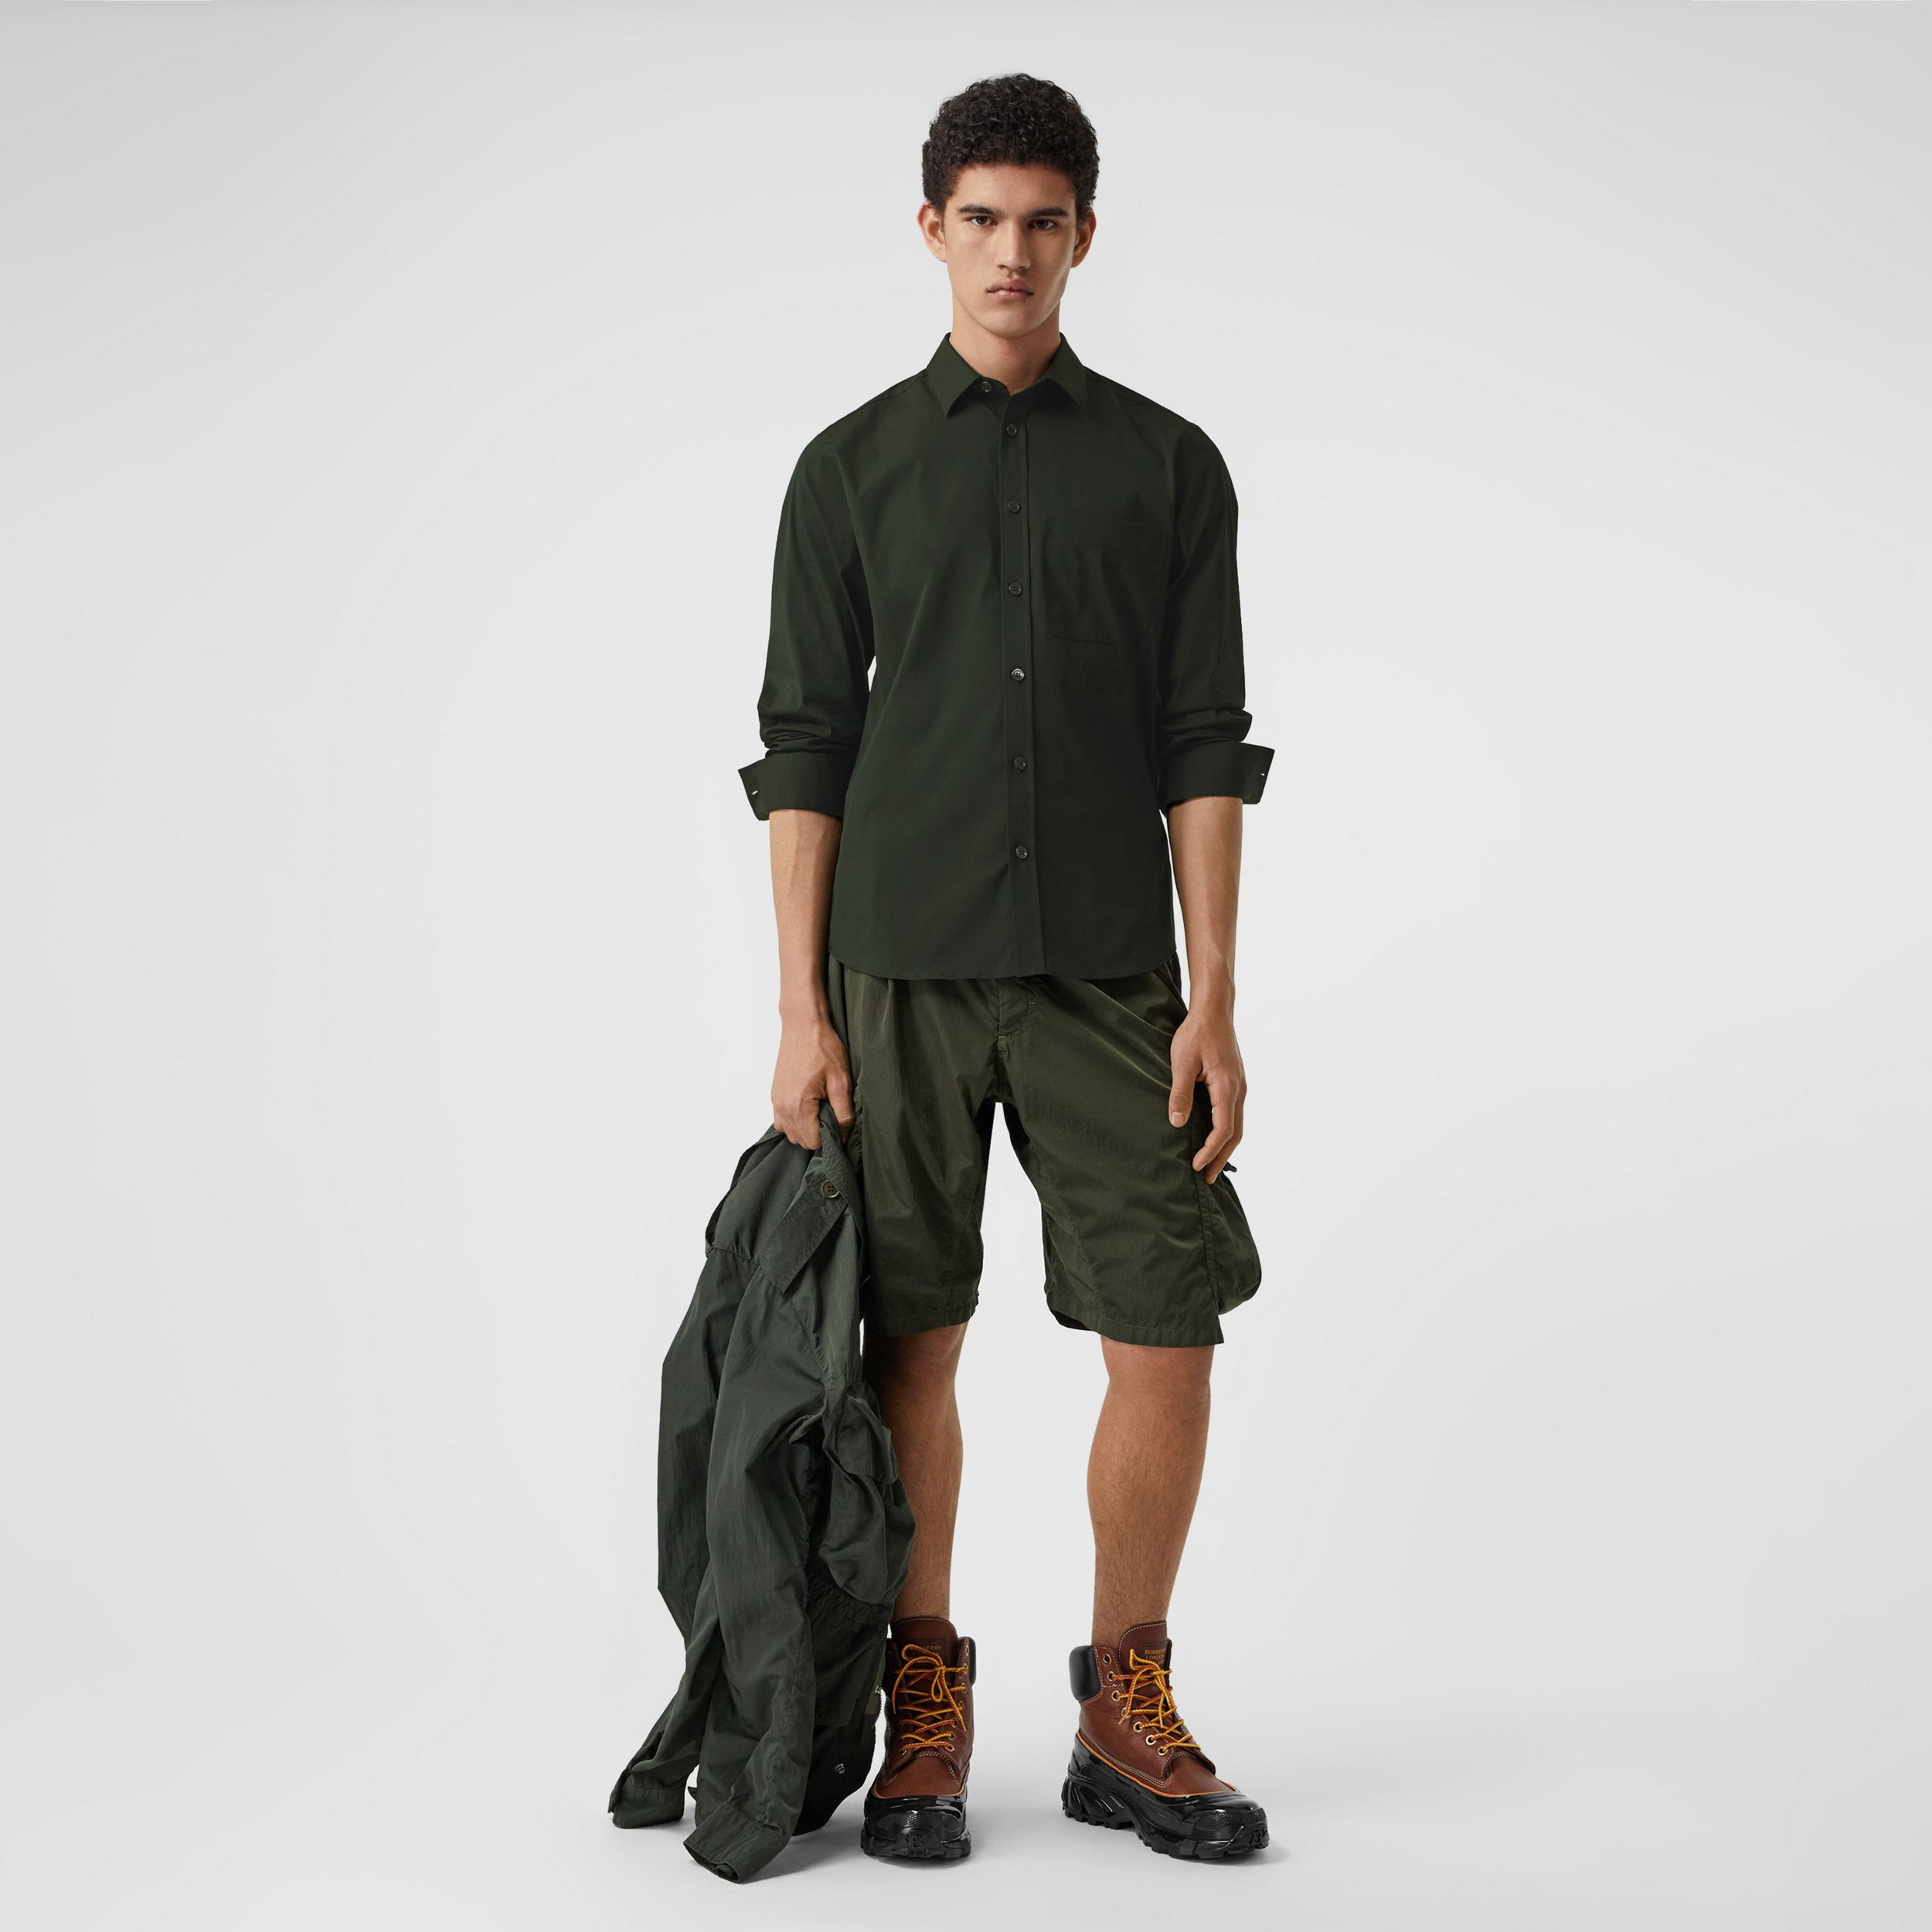 Embroidered Logo Cotton Blend Shirt in Forest Green - Men | Burberry Australia - 1